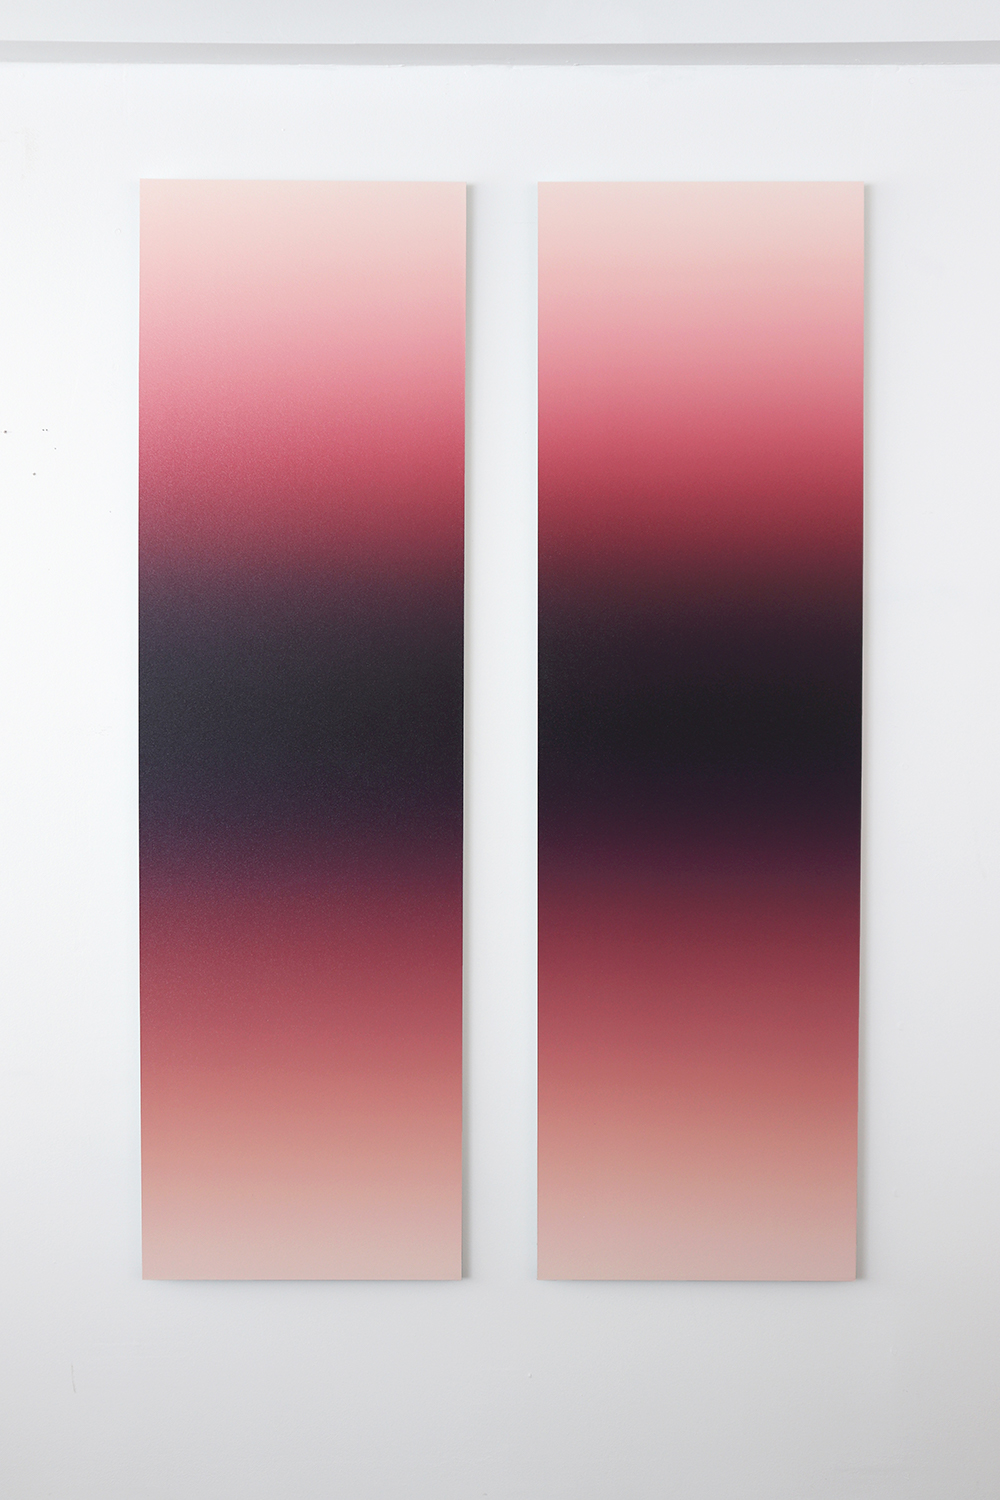 Red-Mauve Shadow No.2 (Diptych)